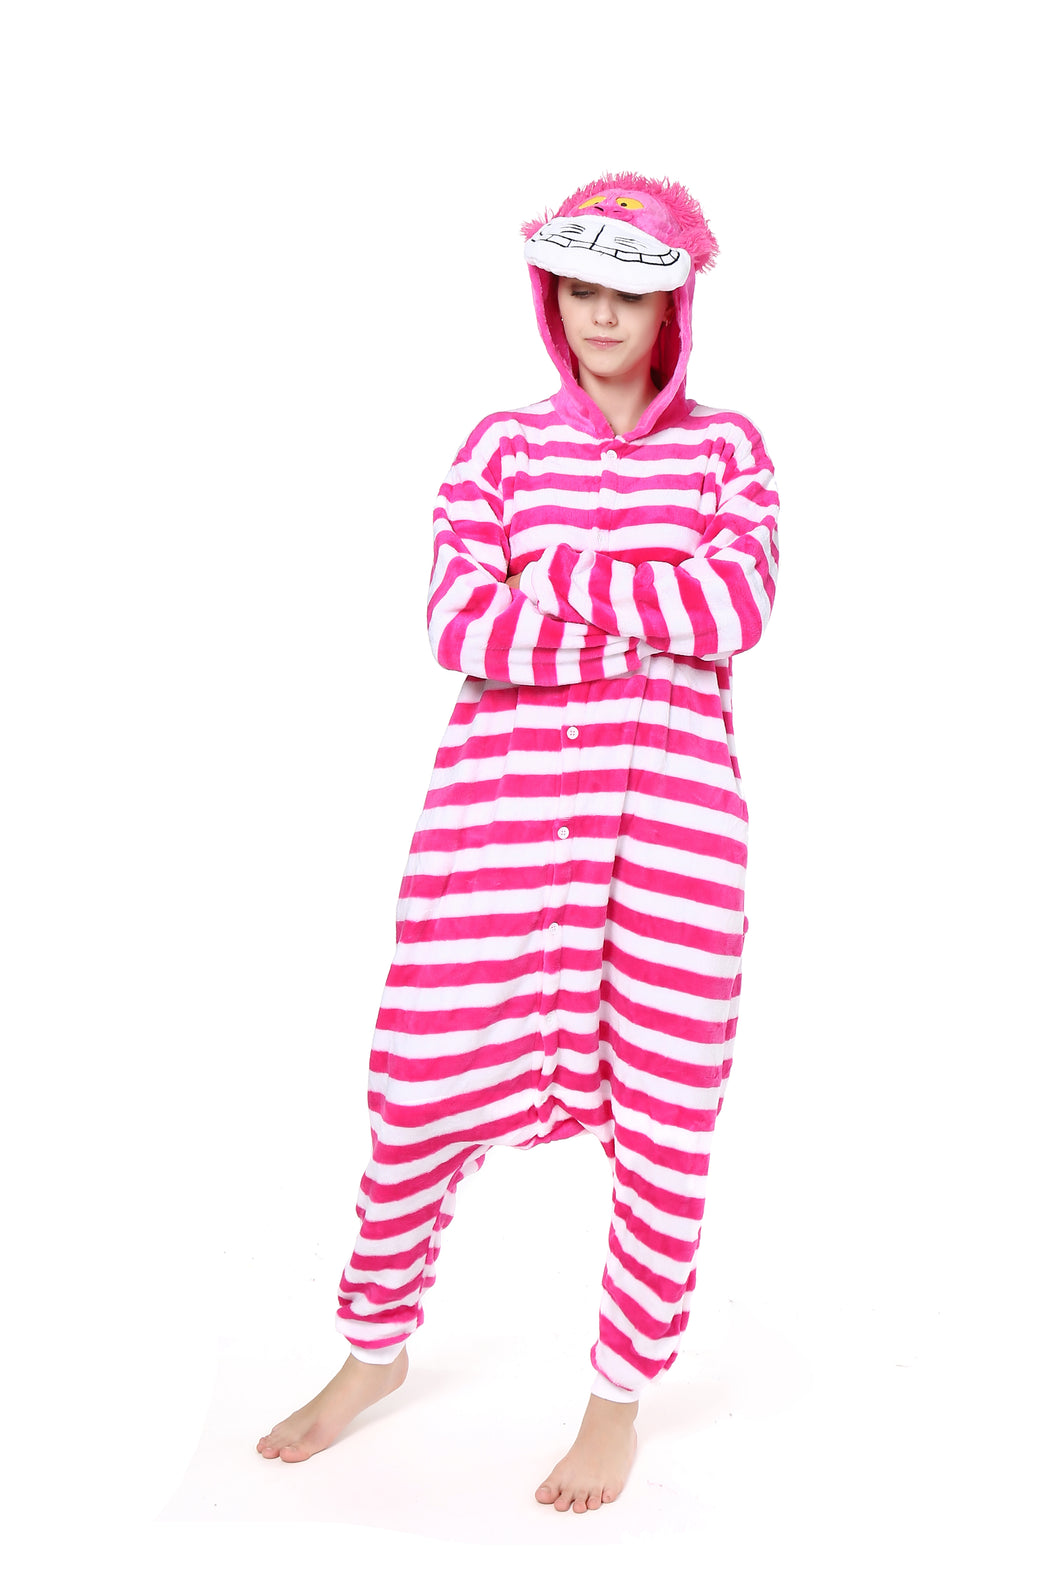 Cheshire Cat Onesie Costume Unisex Adult Animals Cheshire Cat Pajamas Cosplay